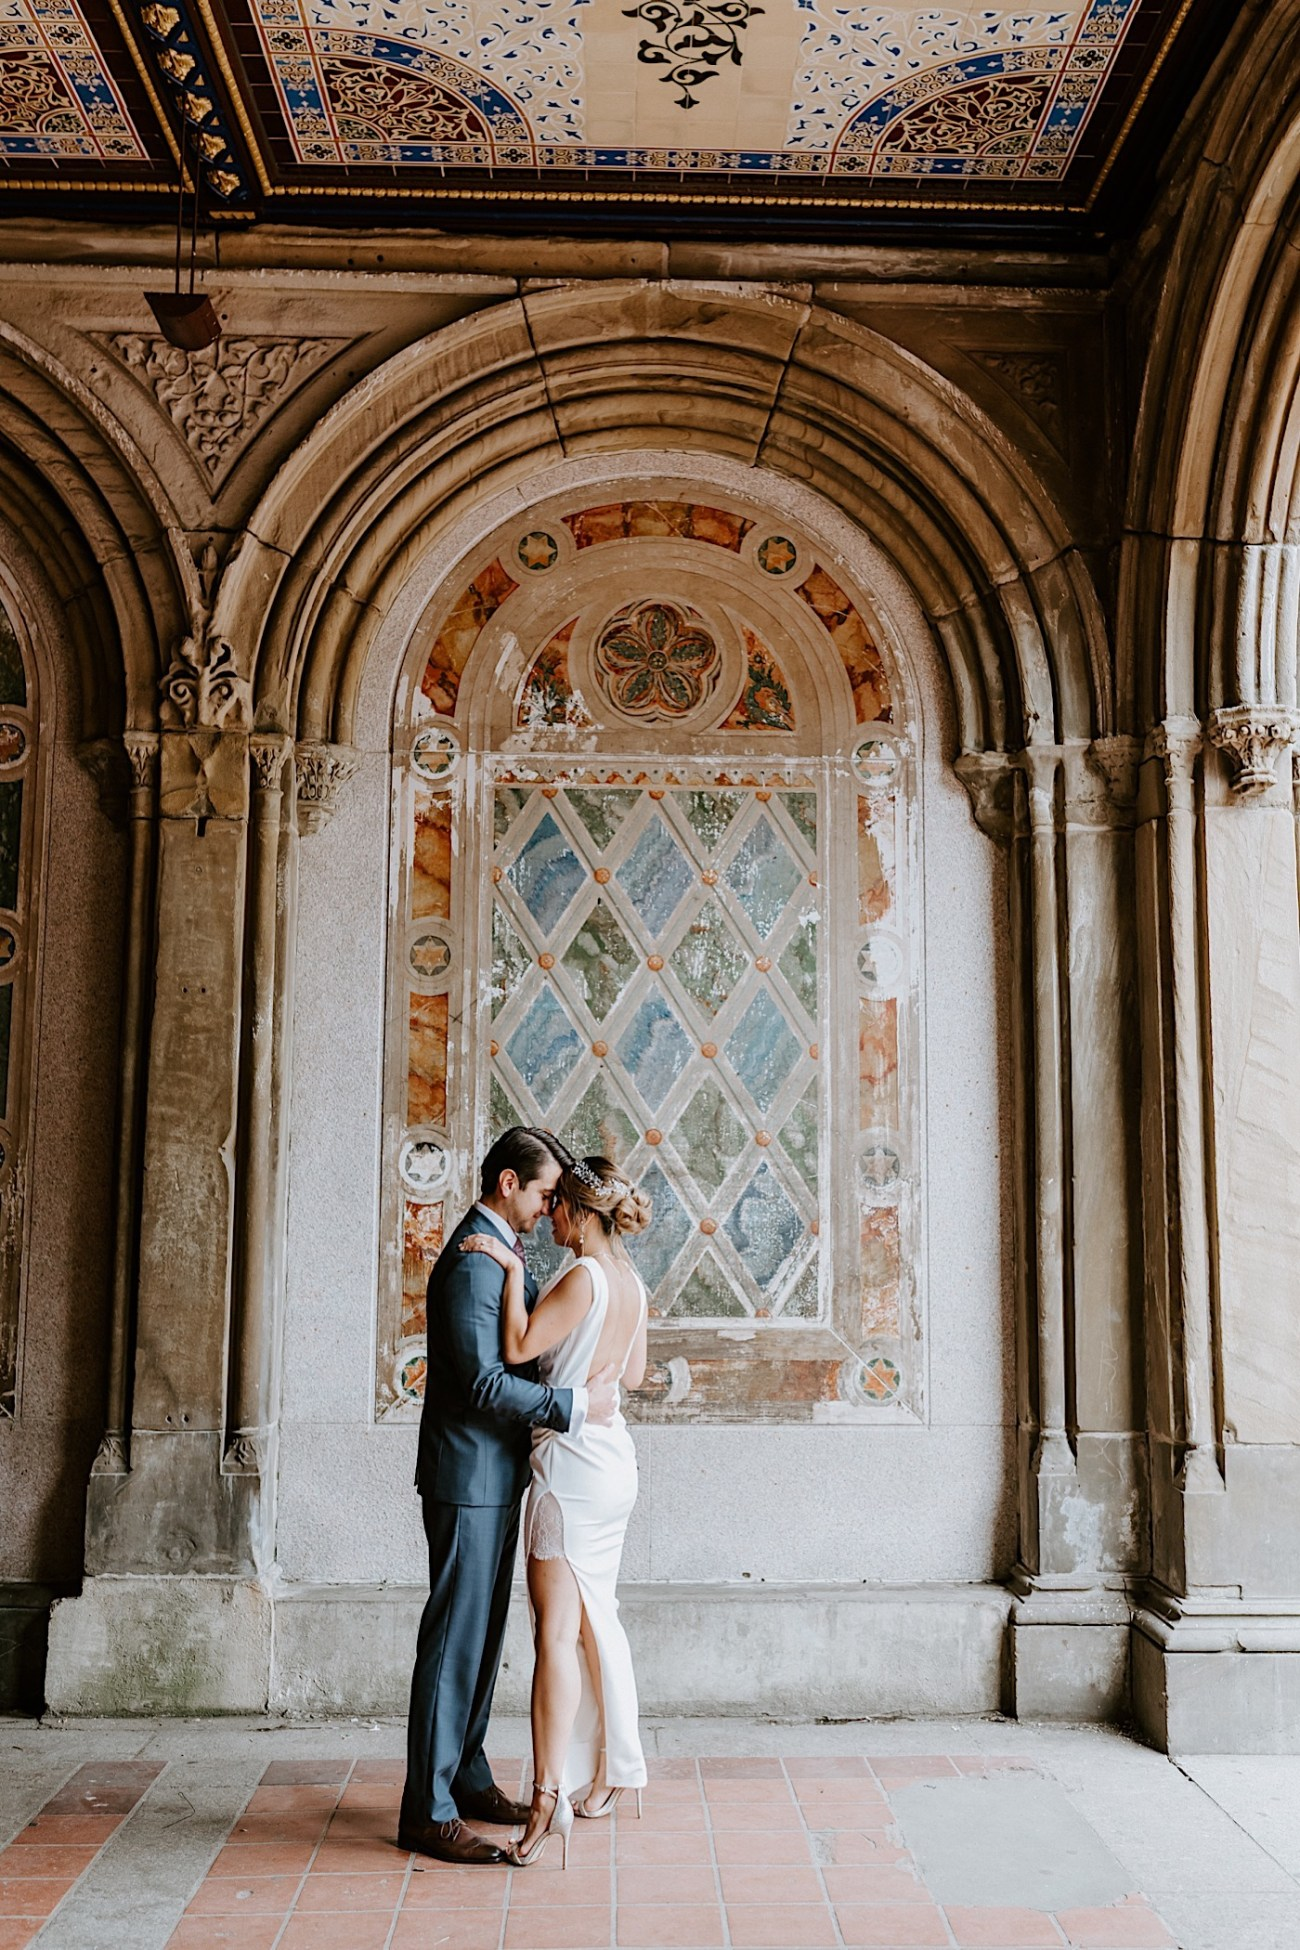 Bride and Groom standing by the Bethesda Terrace in Central Park, Wedding photos in Central Park, Anais Possamai Photography